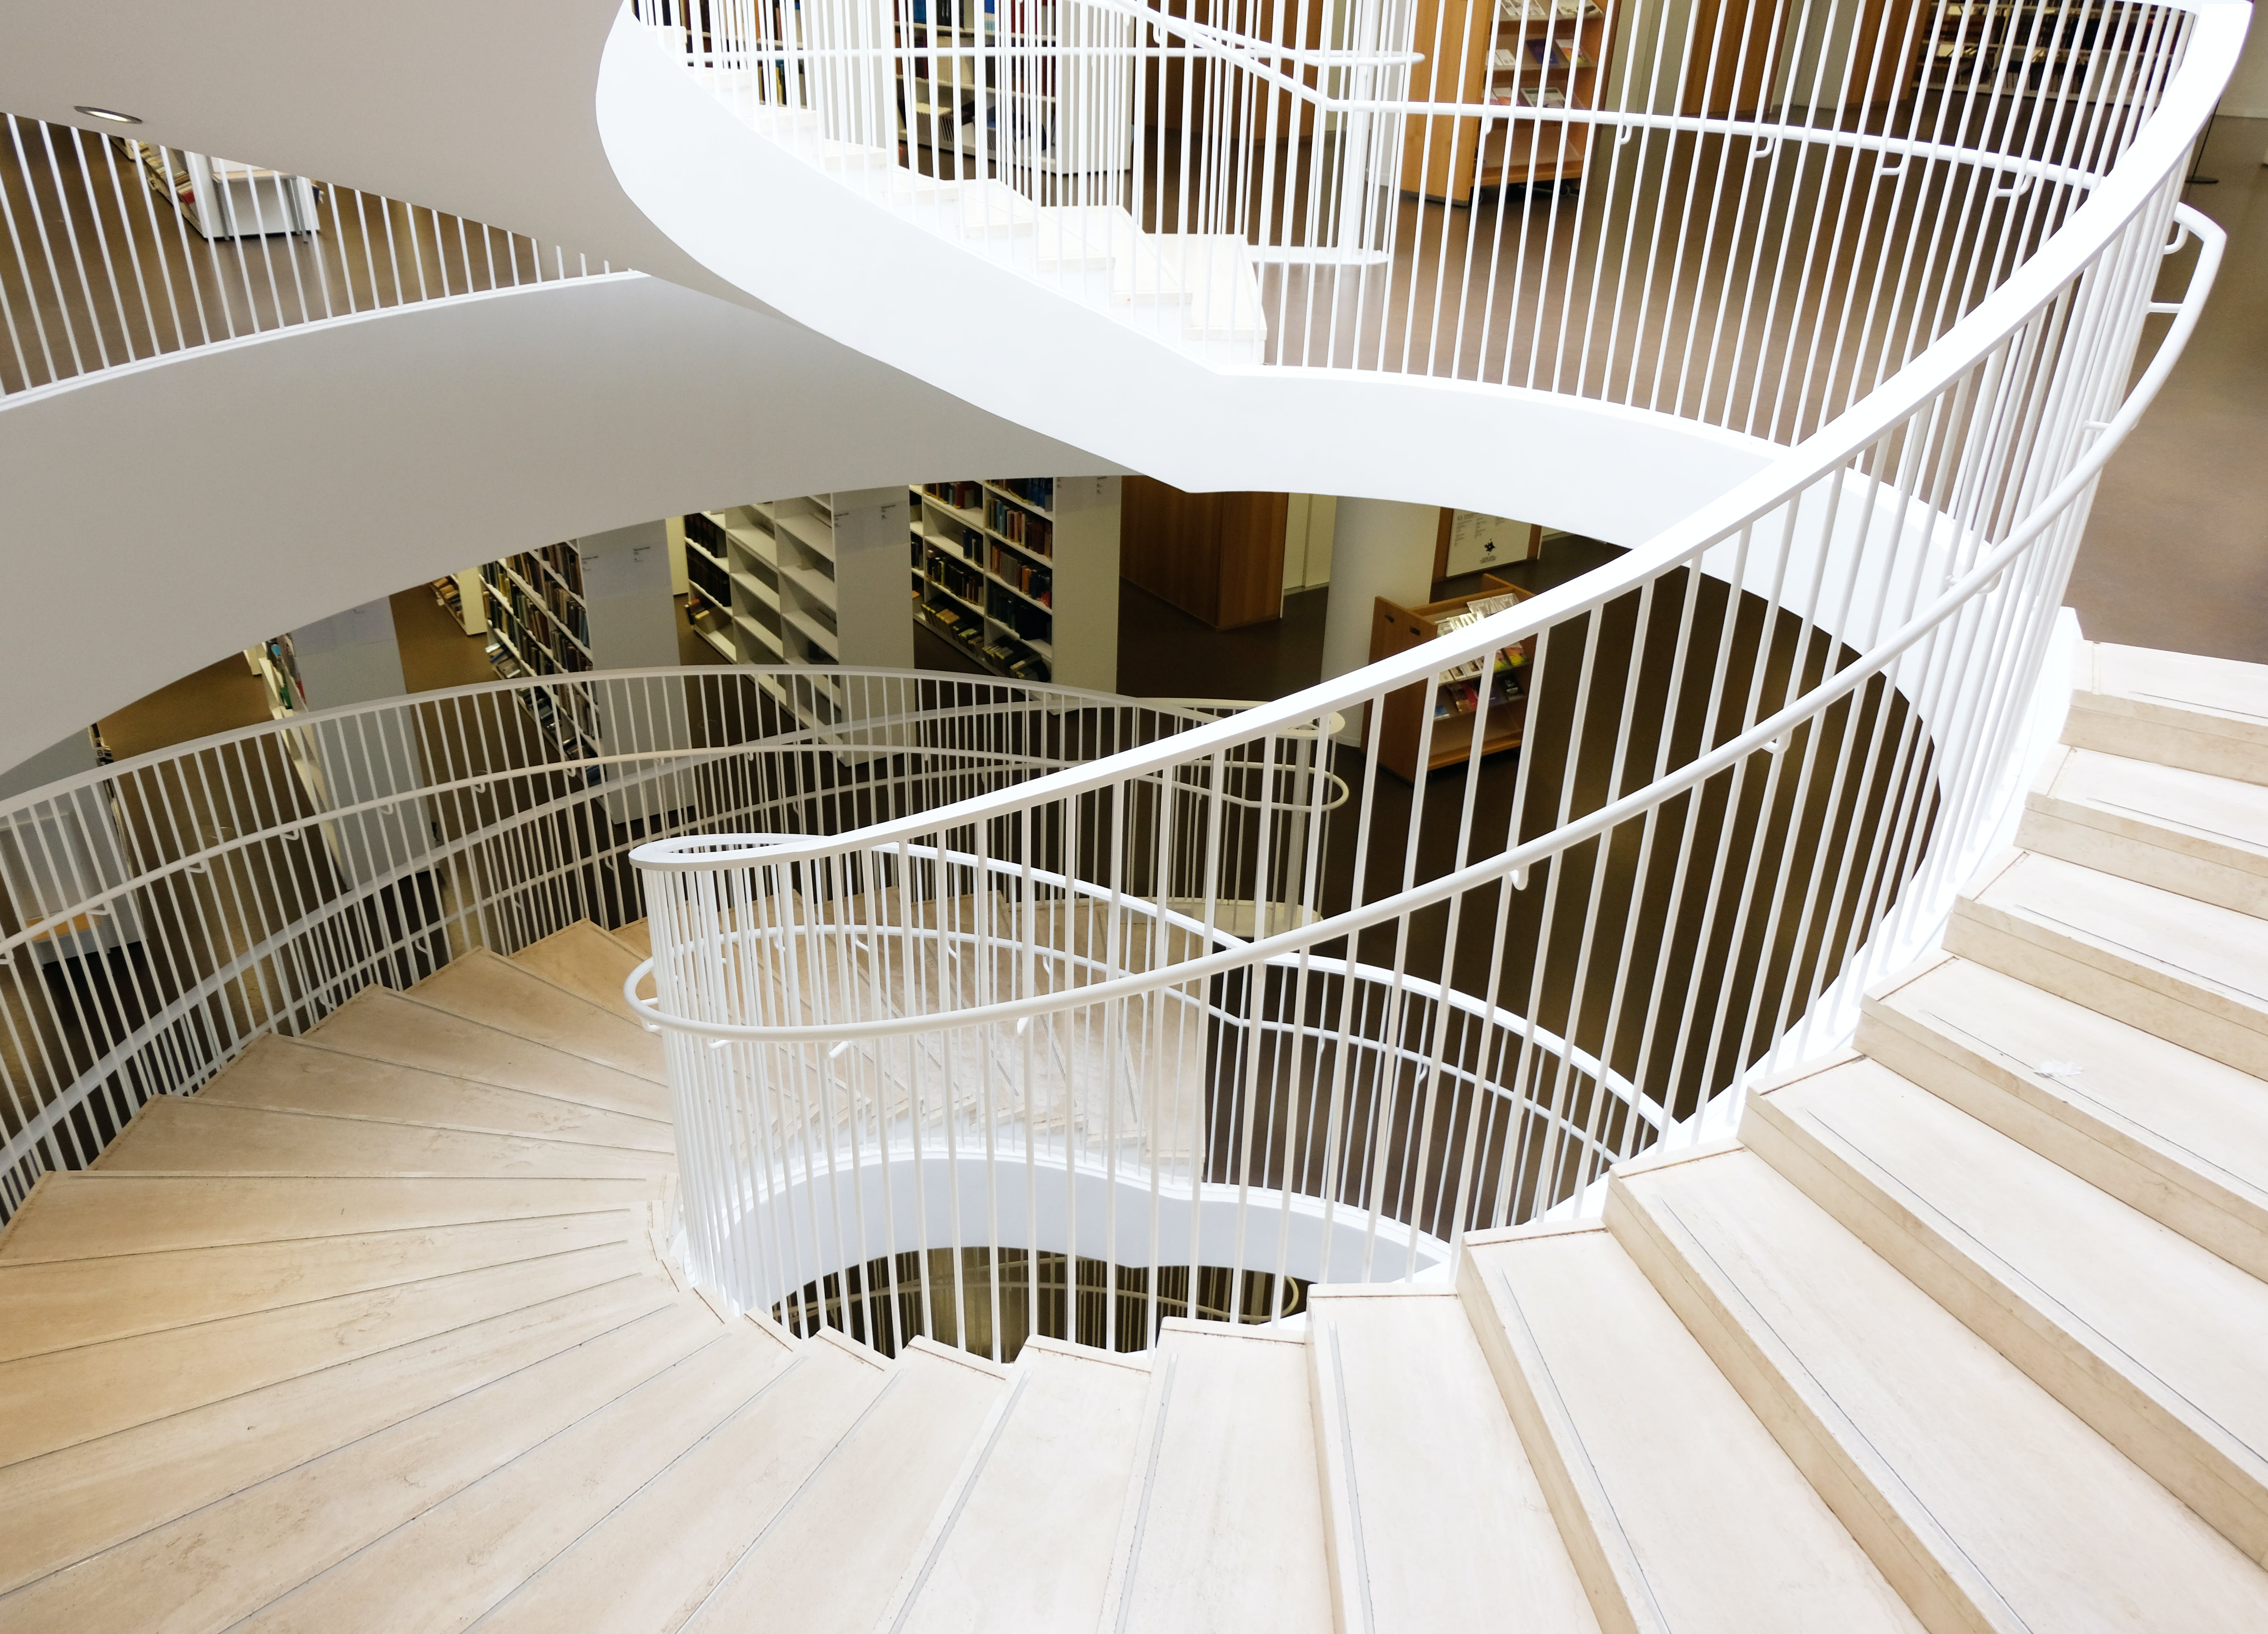 Free stock photo of Helsinki, library, perspective, spiral staircase